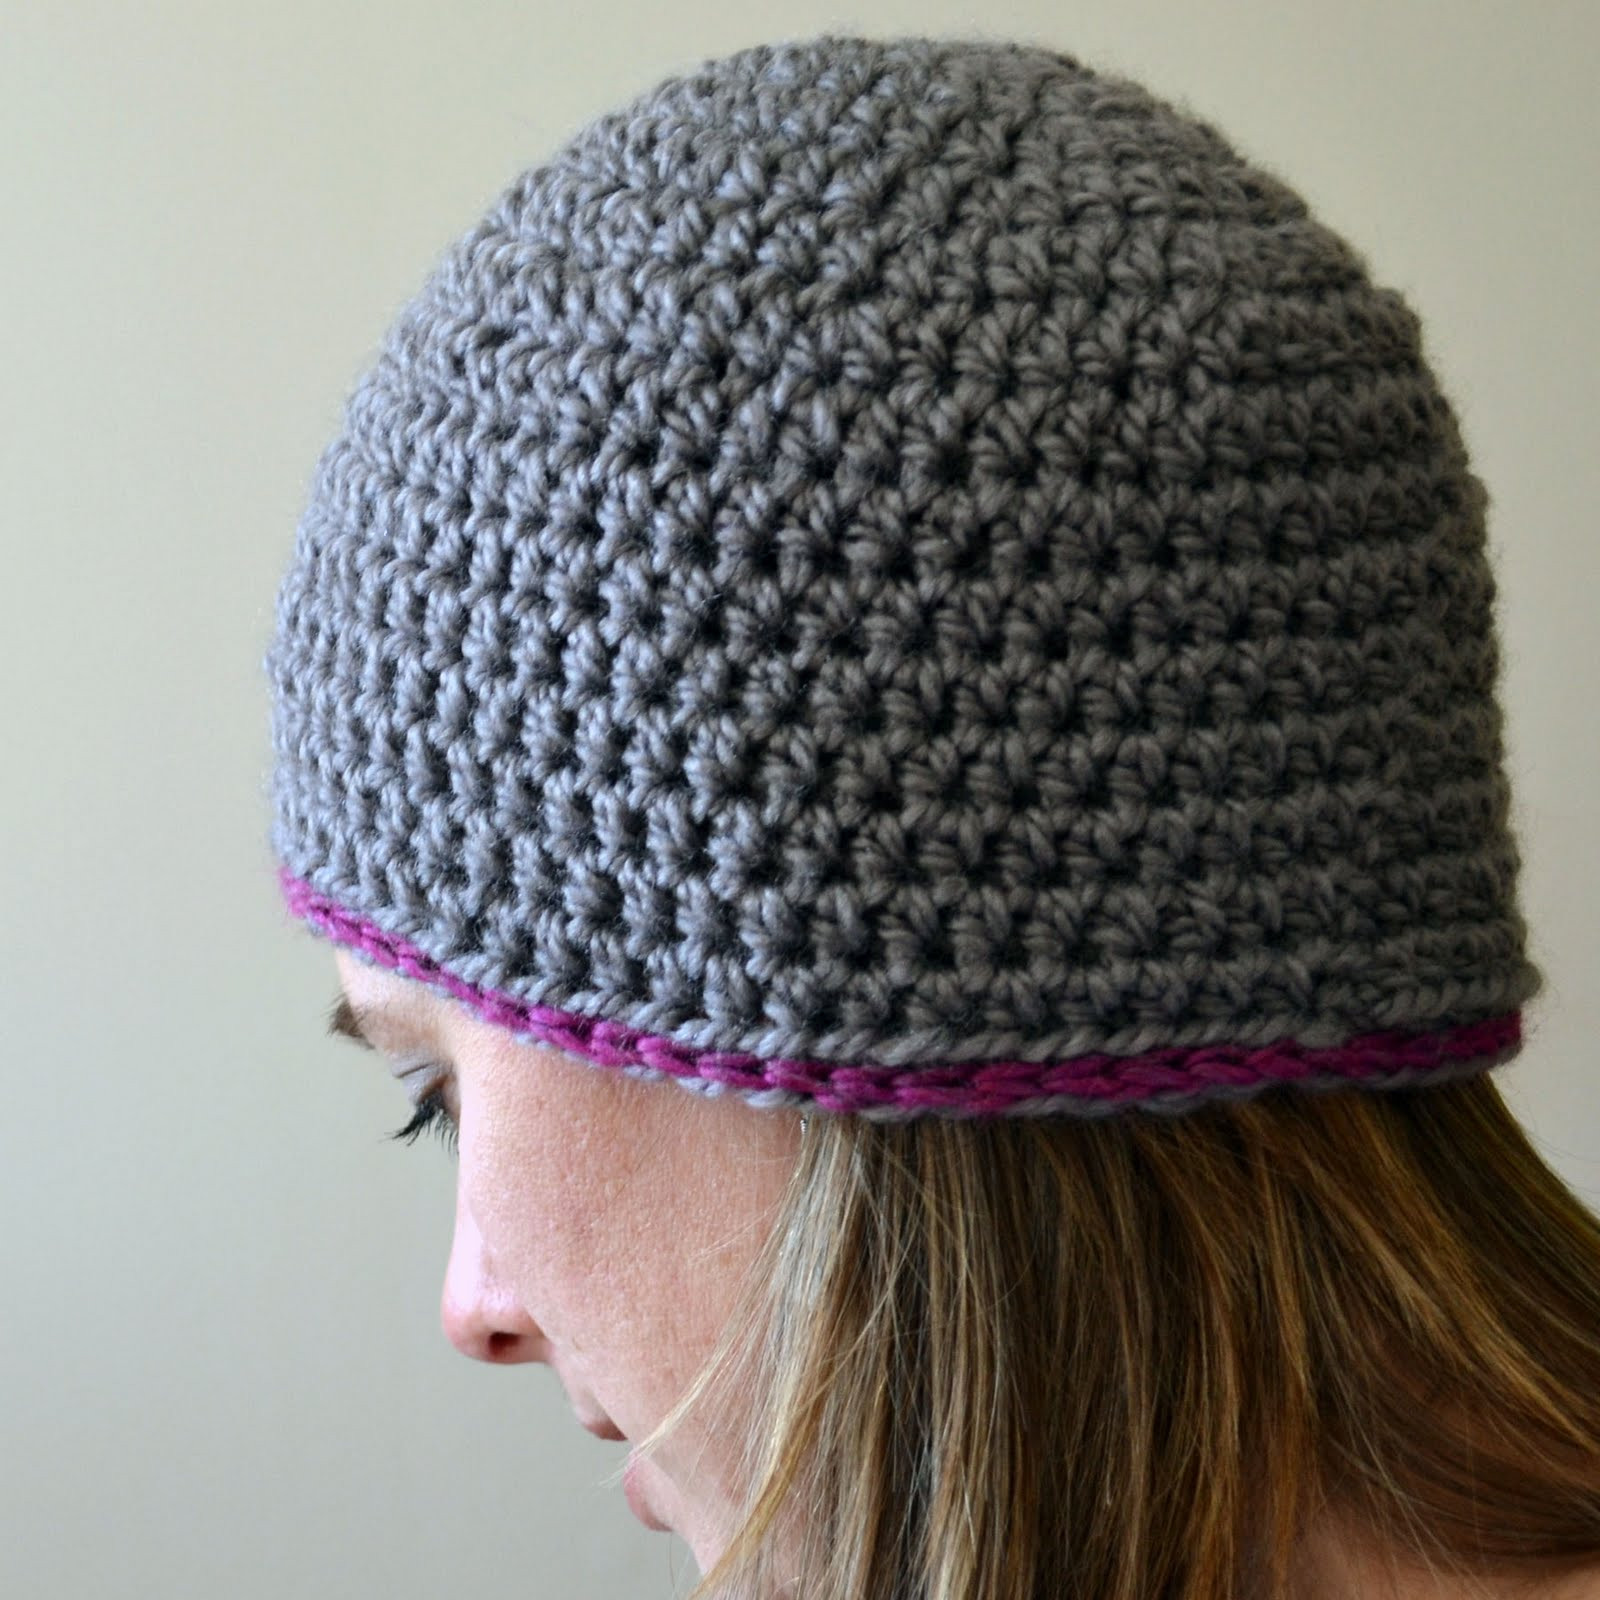 Awesome Hdc Crochet Beanie Pattern – Easy Crochet Patterns Simple Crochet Hat Of Awesome 43 Images Simple Crochet Hat